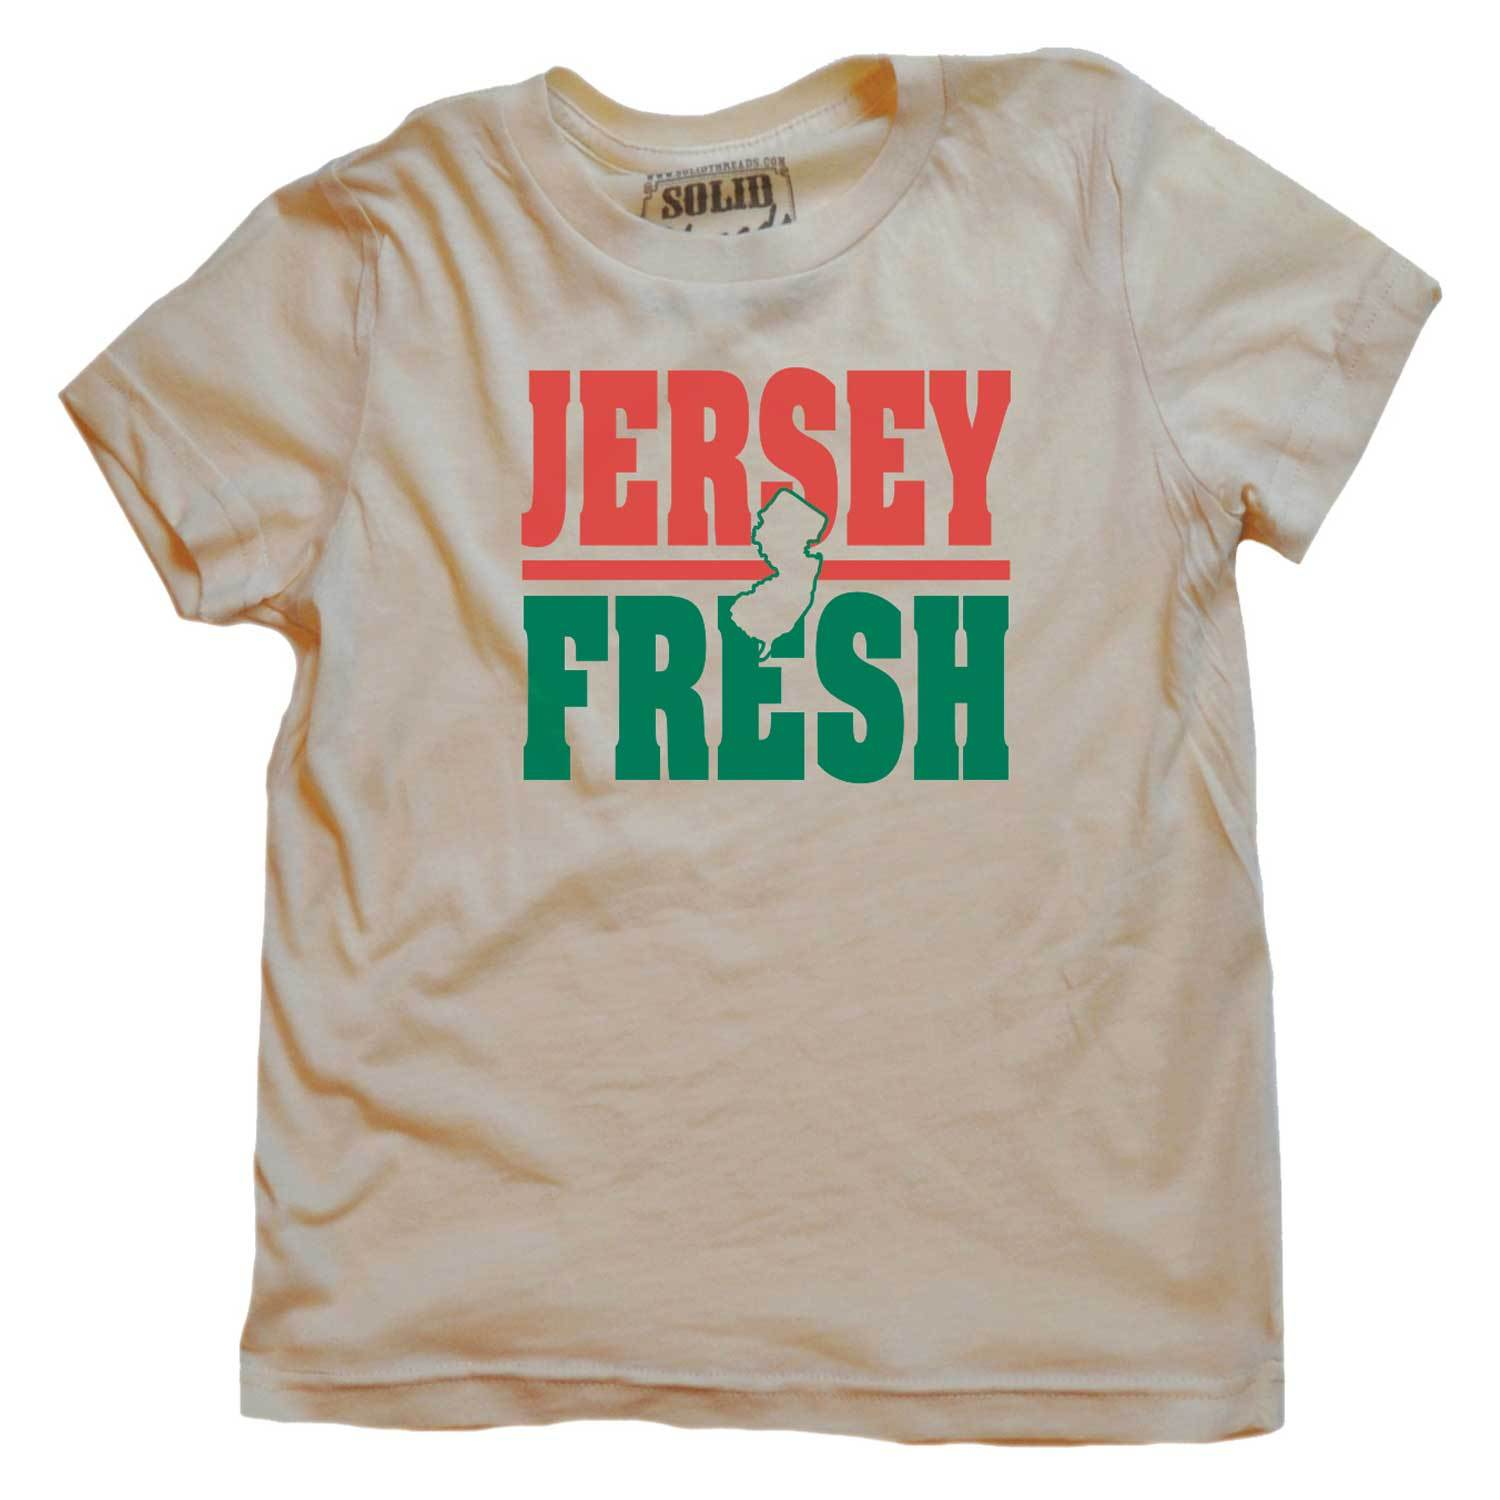 Toddler's Jersey Fresh Retro Tee | SOLID THREADS